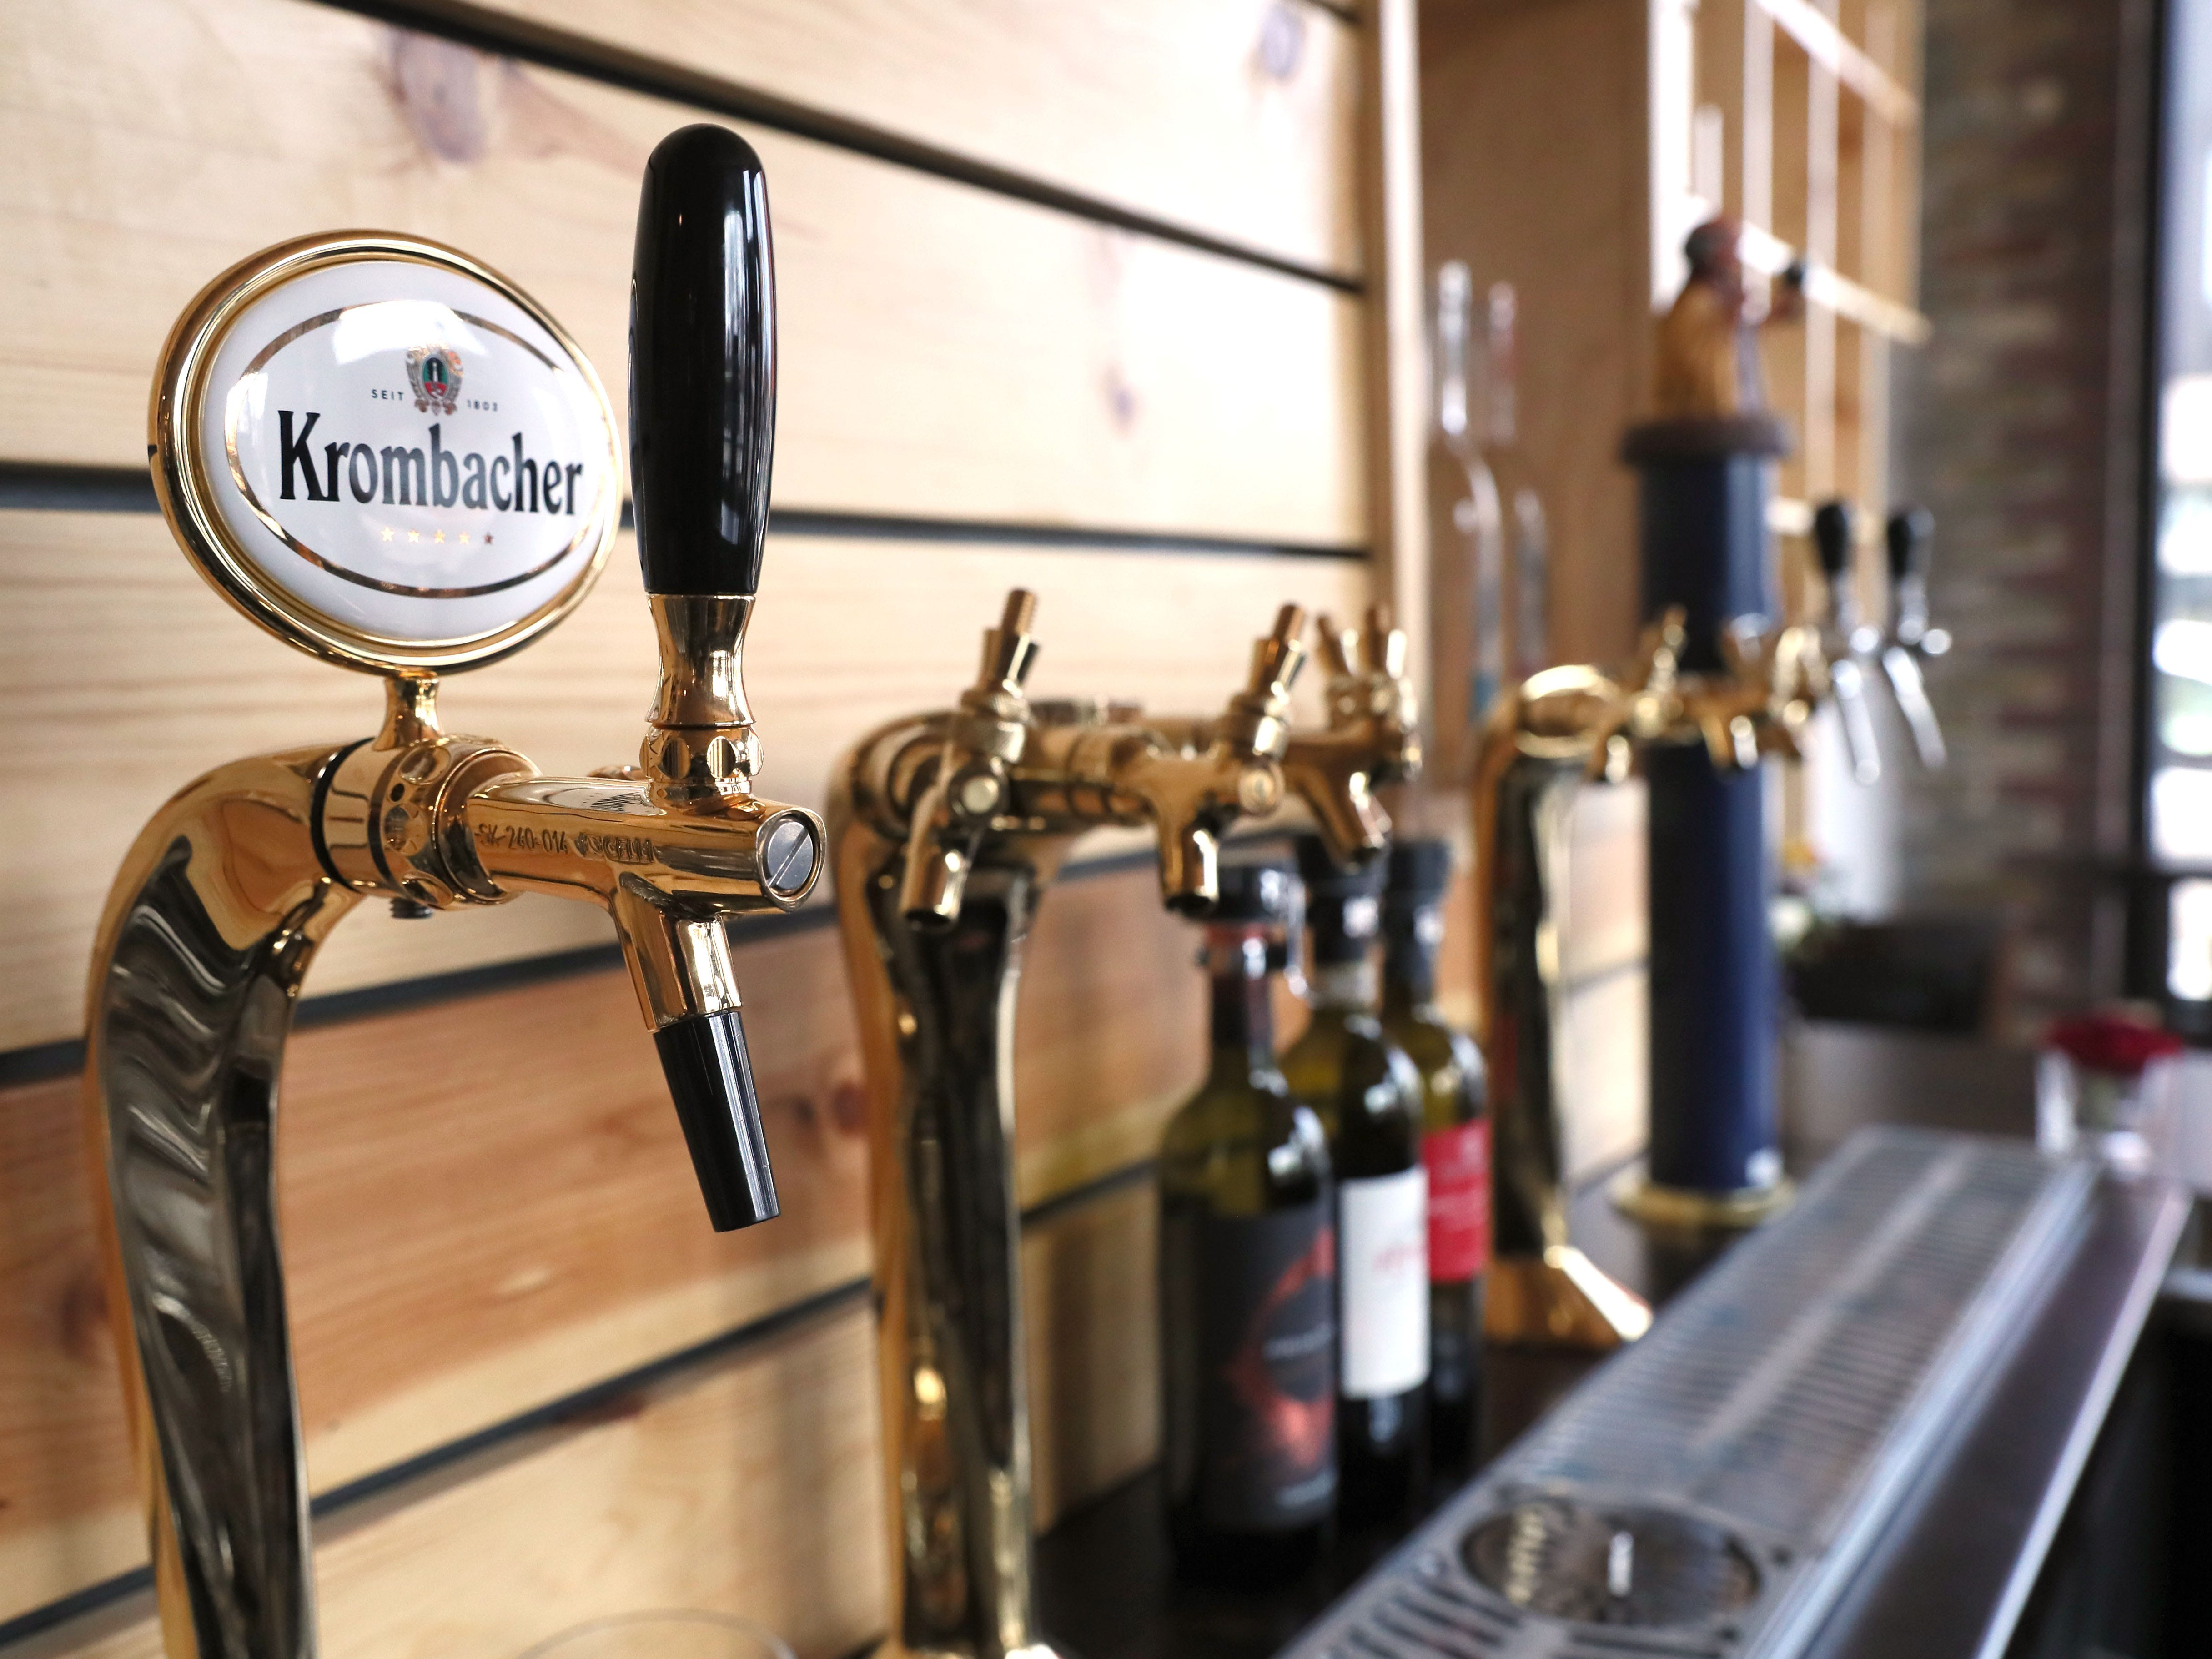 Baccanera is a new wine bar at 1732 E. North Ave in Milwaukee.  Besides a variety of wines they serve Krombacher a German beer.